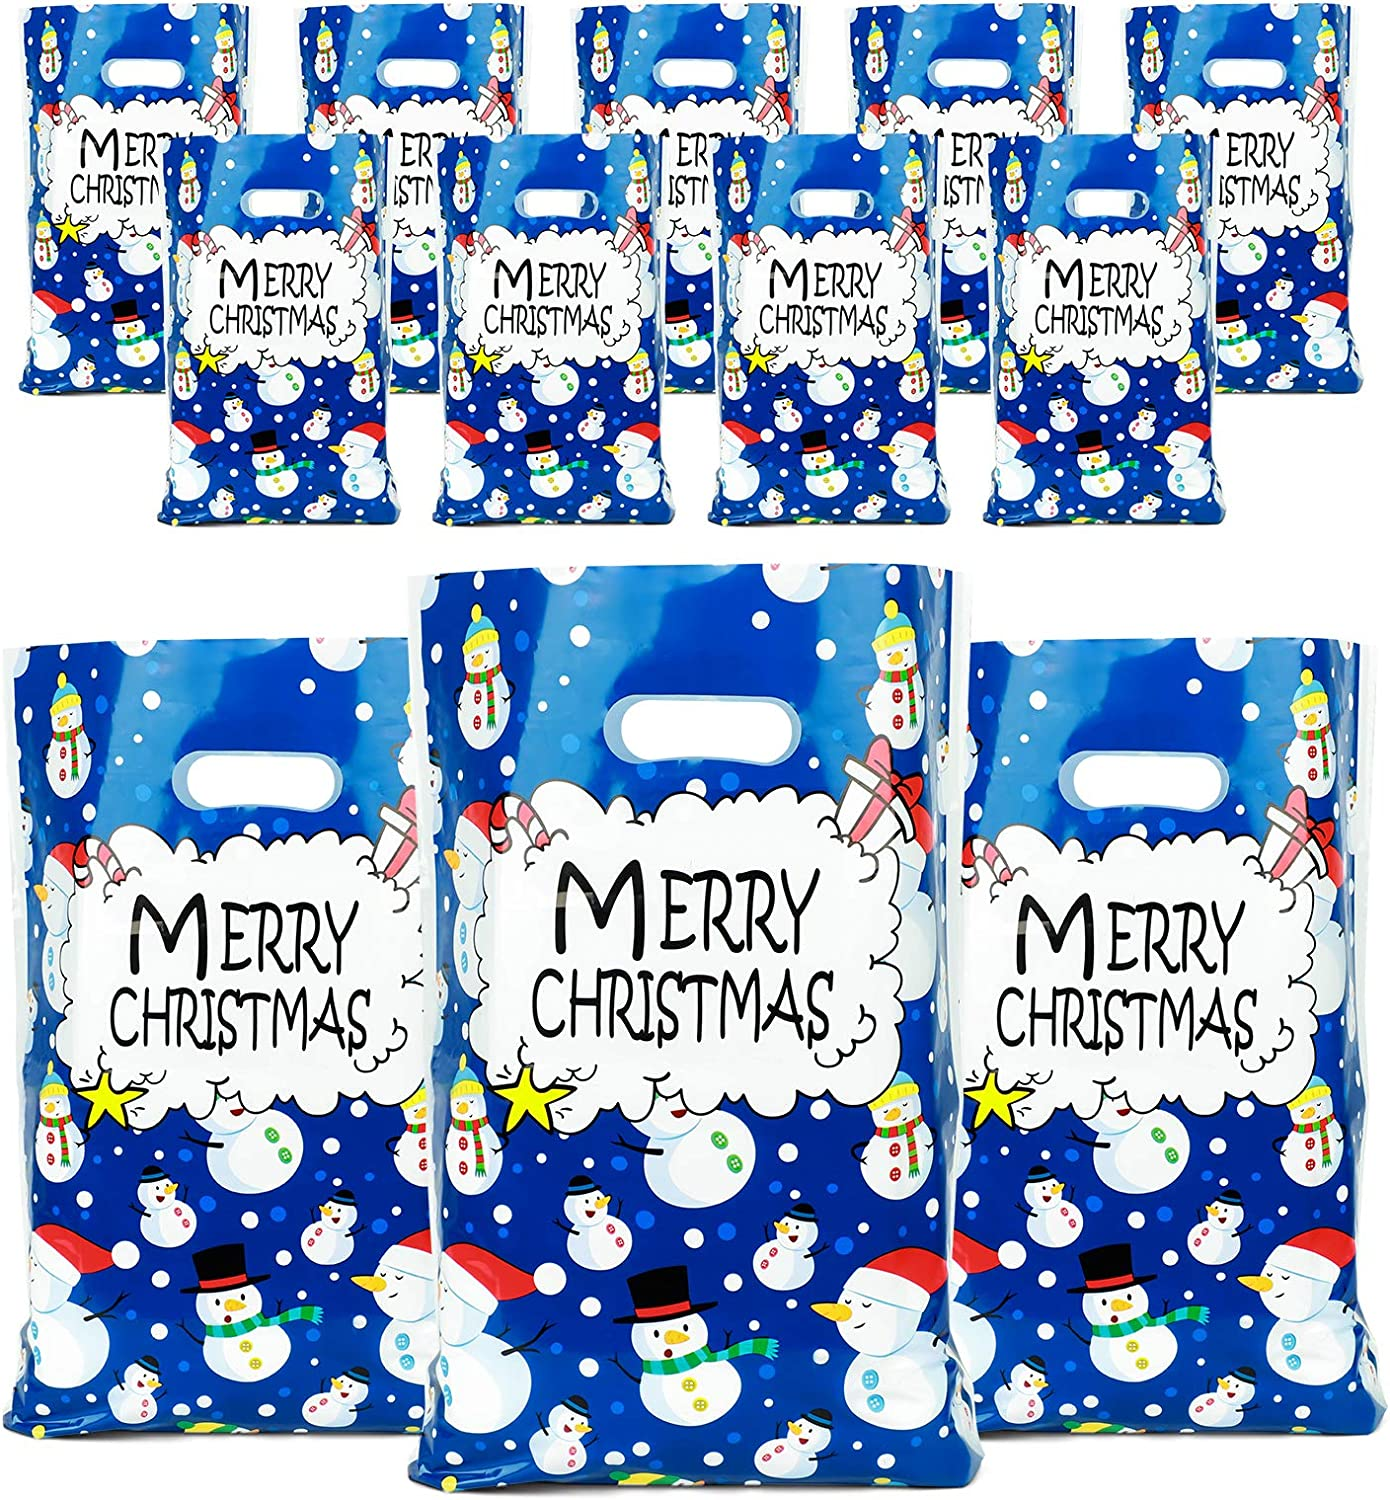 Christmas Bags for Gift, Plastic Bags with Die Cut Handles Durable Party Favor Bags 11 in x 13.7 in Shopping Bags Set of 12 Poly Bags